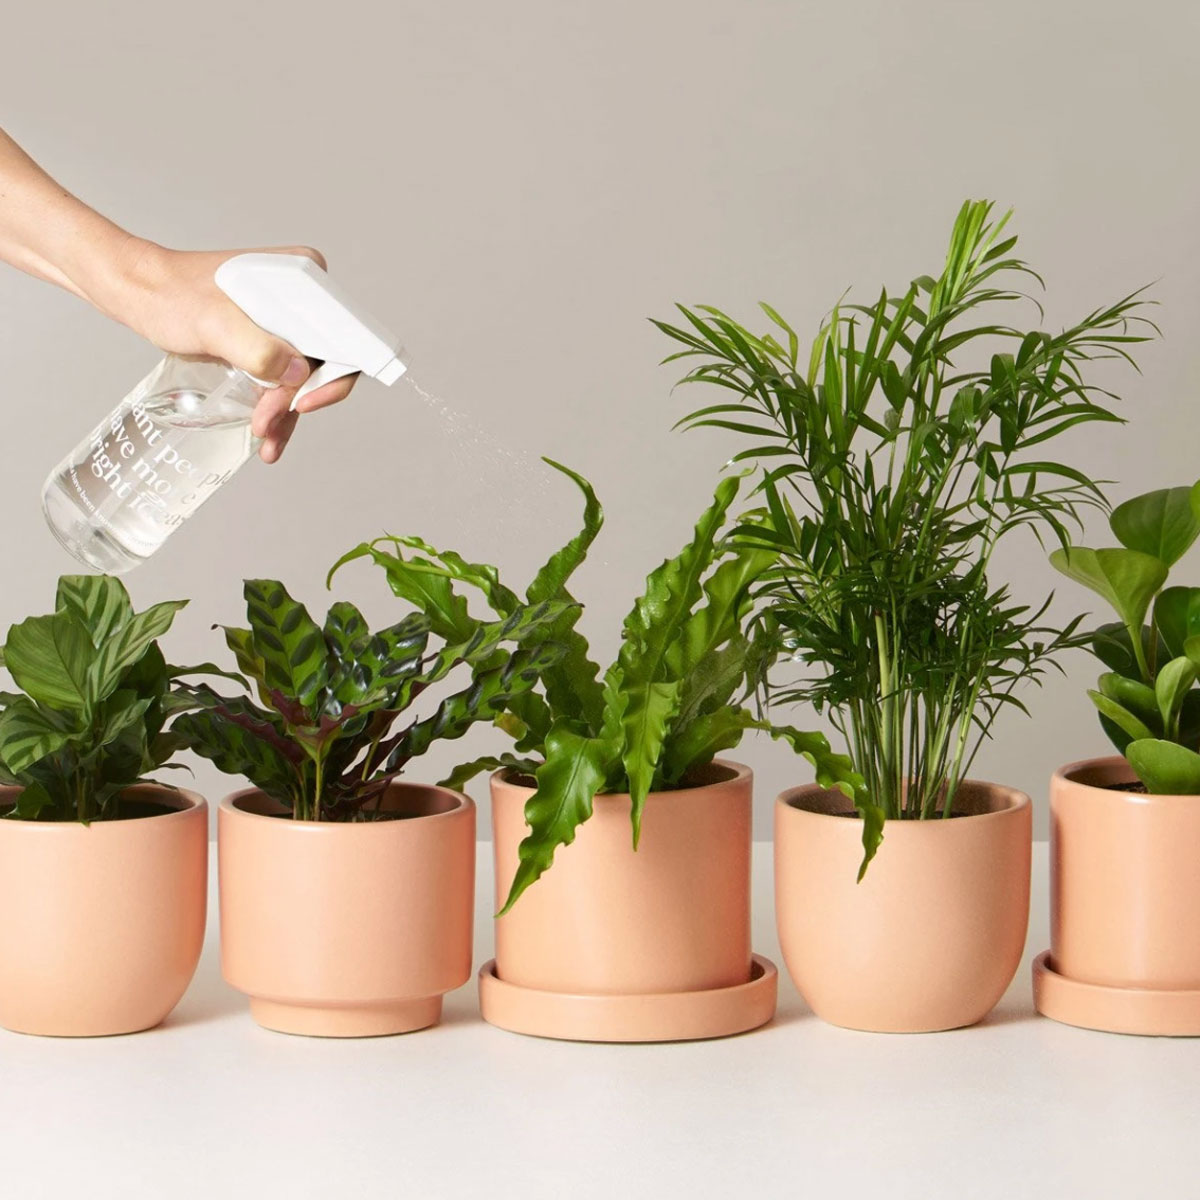 This Monthly Plant Subscription Will Help You Turn Your Home Into a Green Oasis